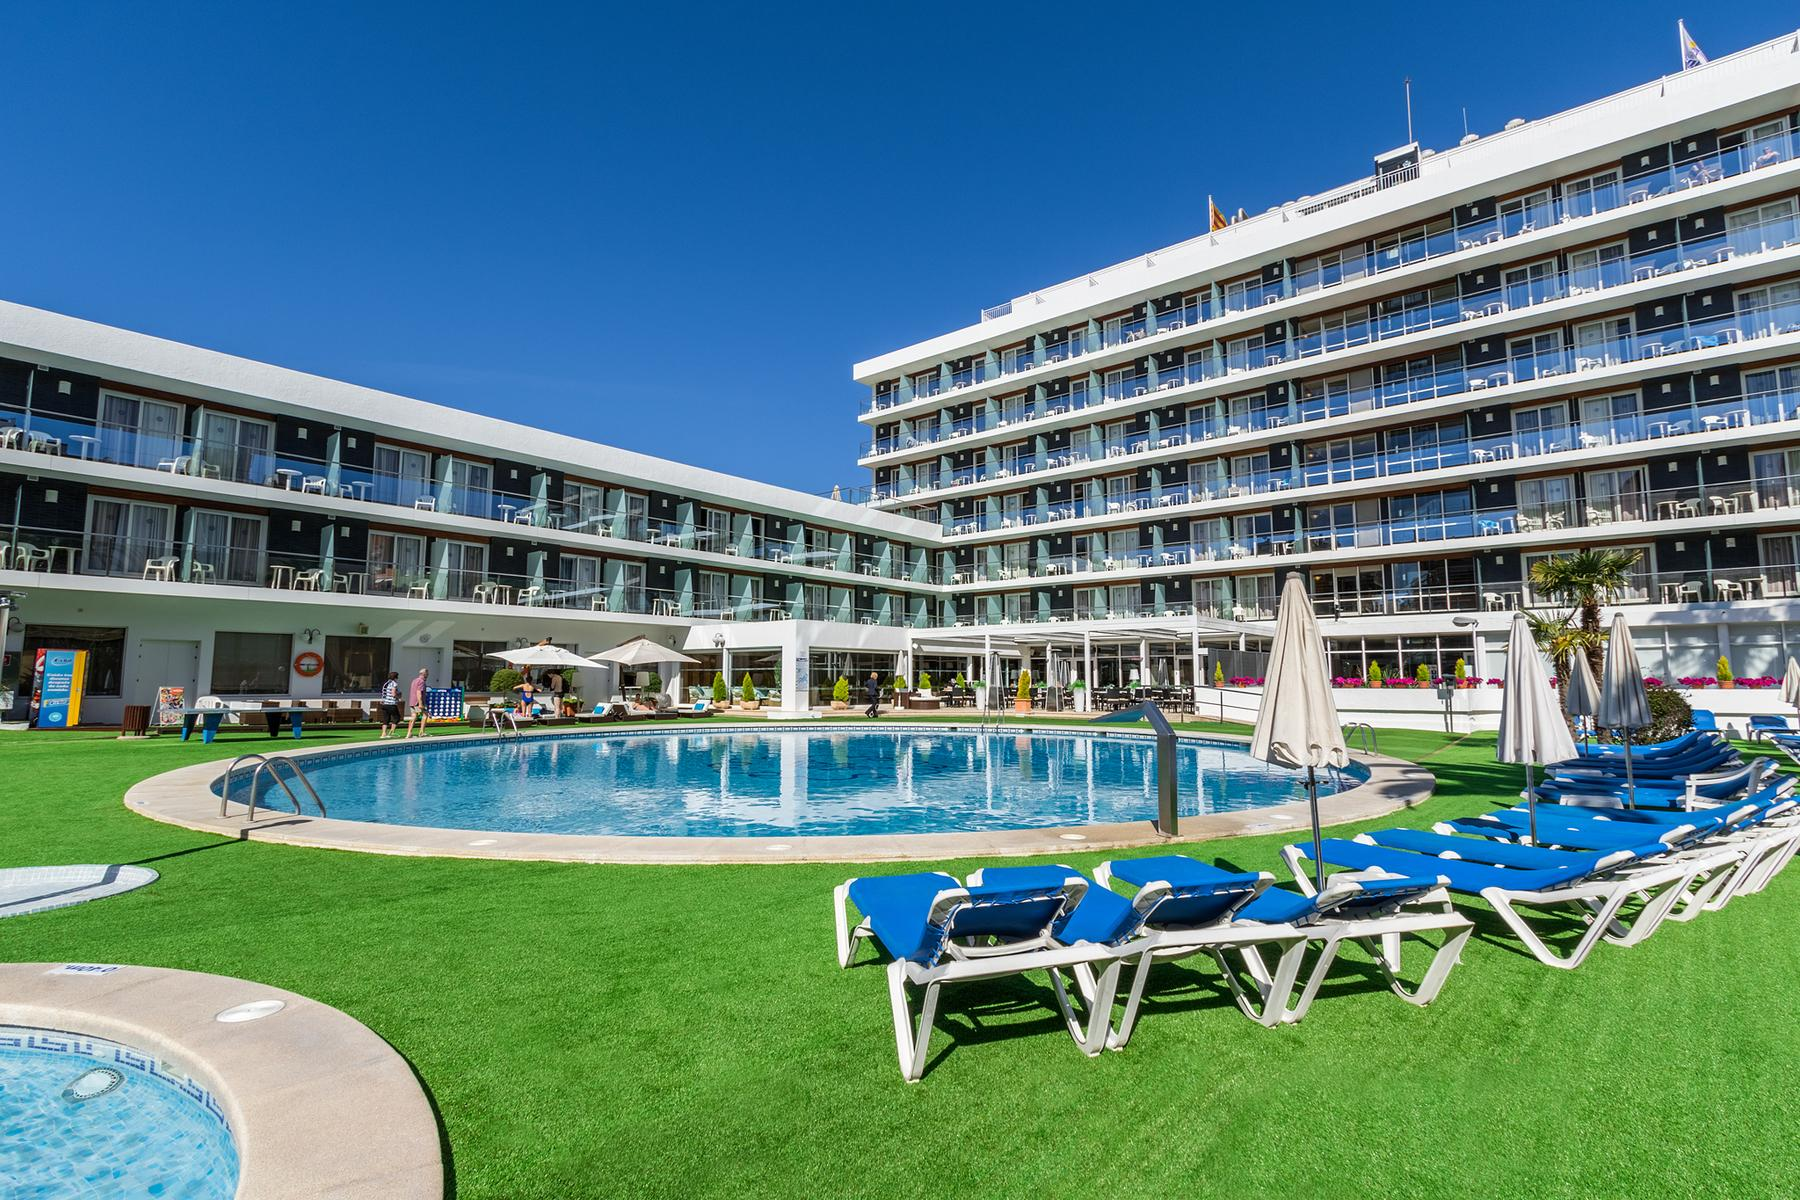 Anabel Hotel in Lloret de Mar, Costa Brava, Spain